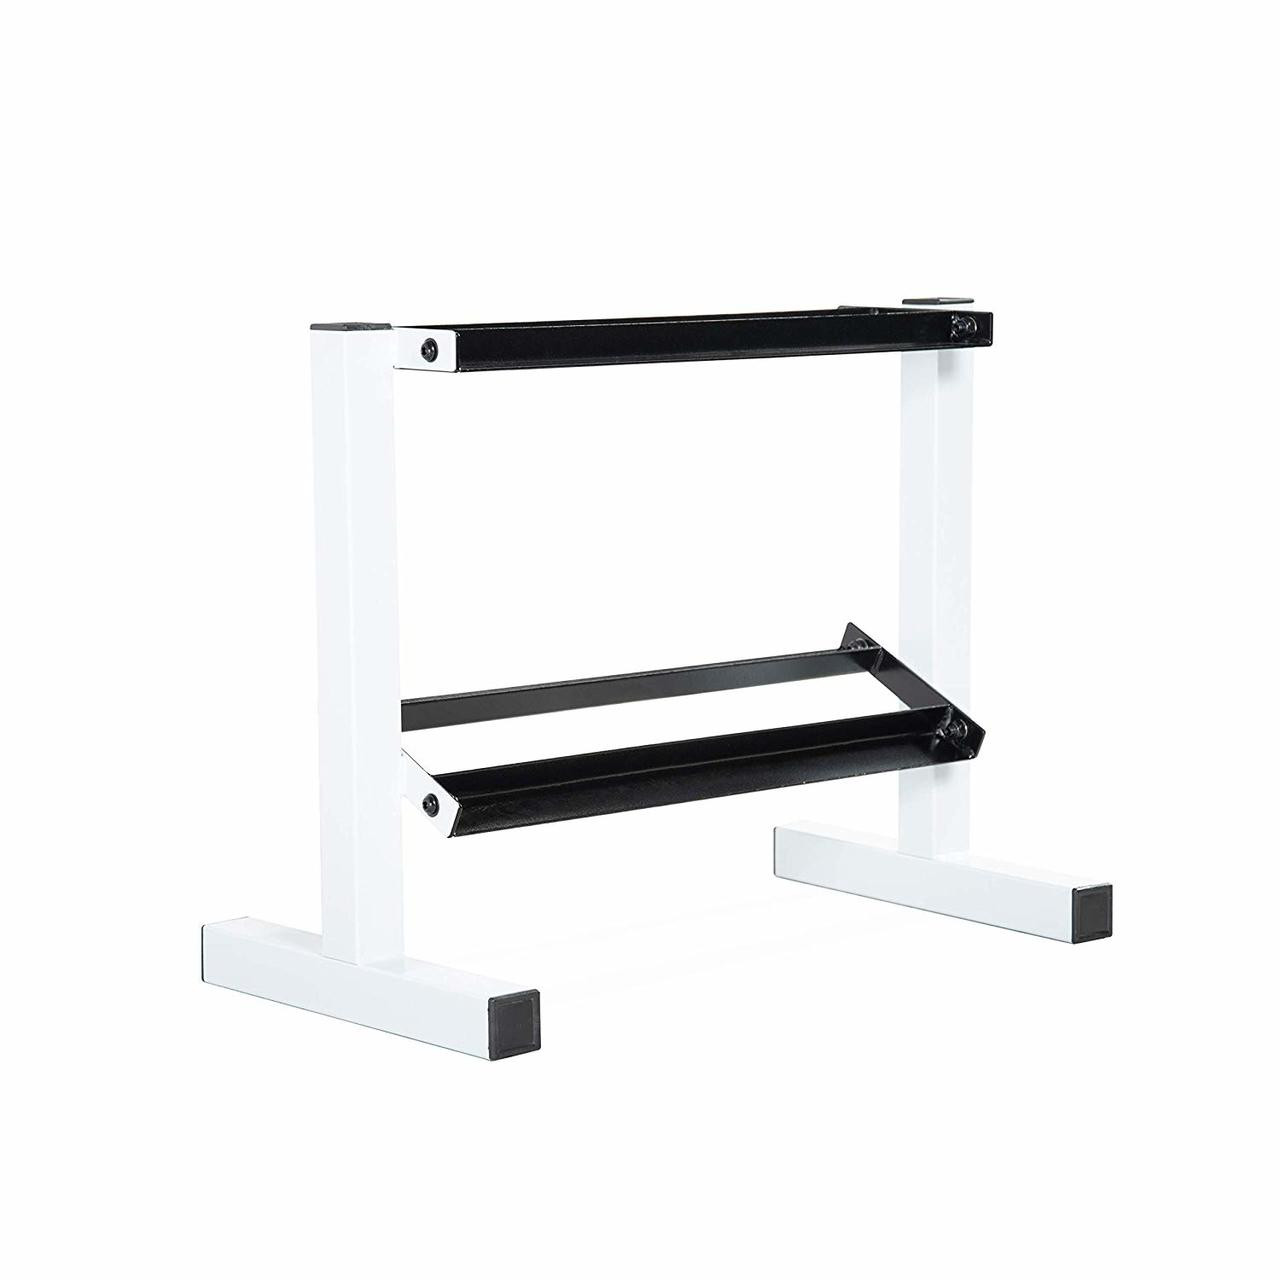 Storage Racks Cap Barbell Black 24